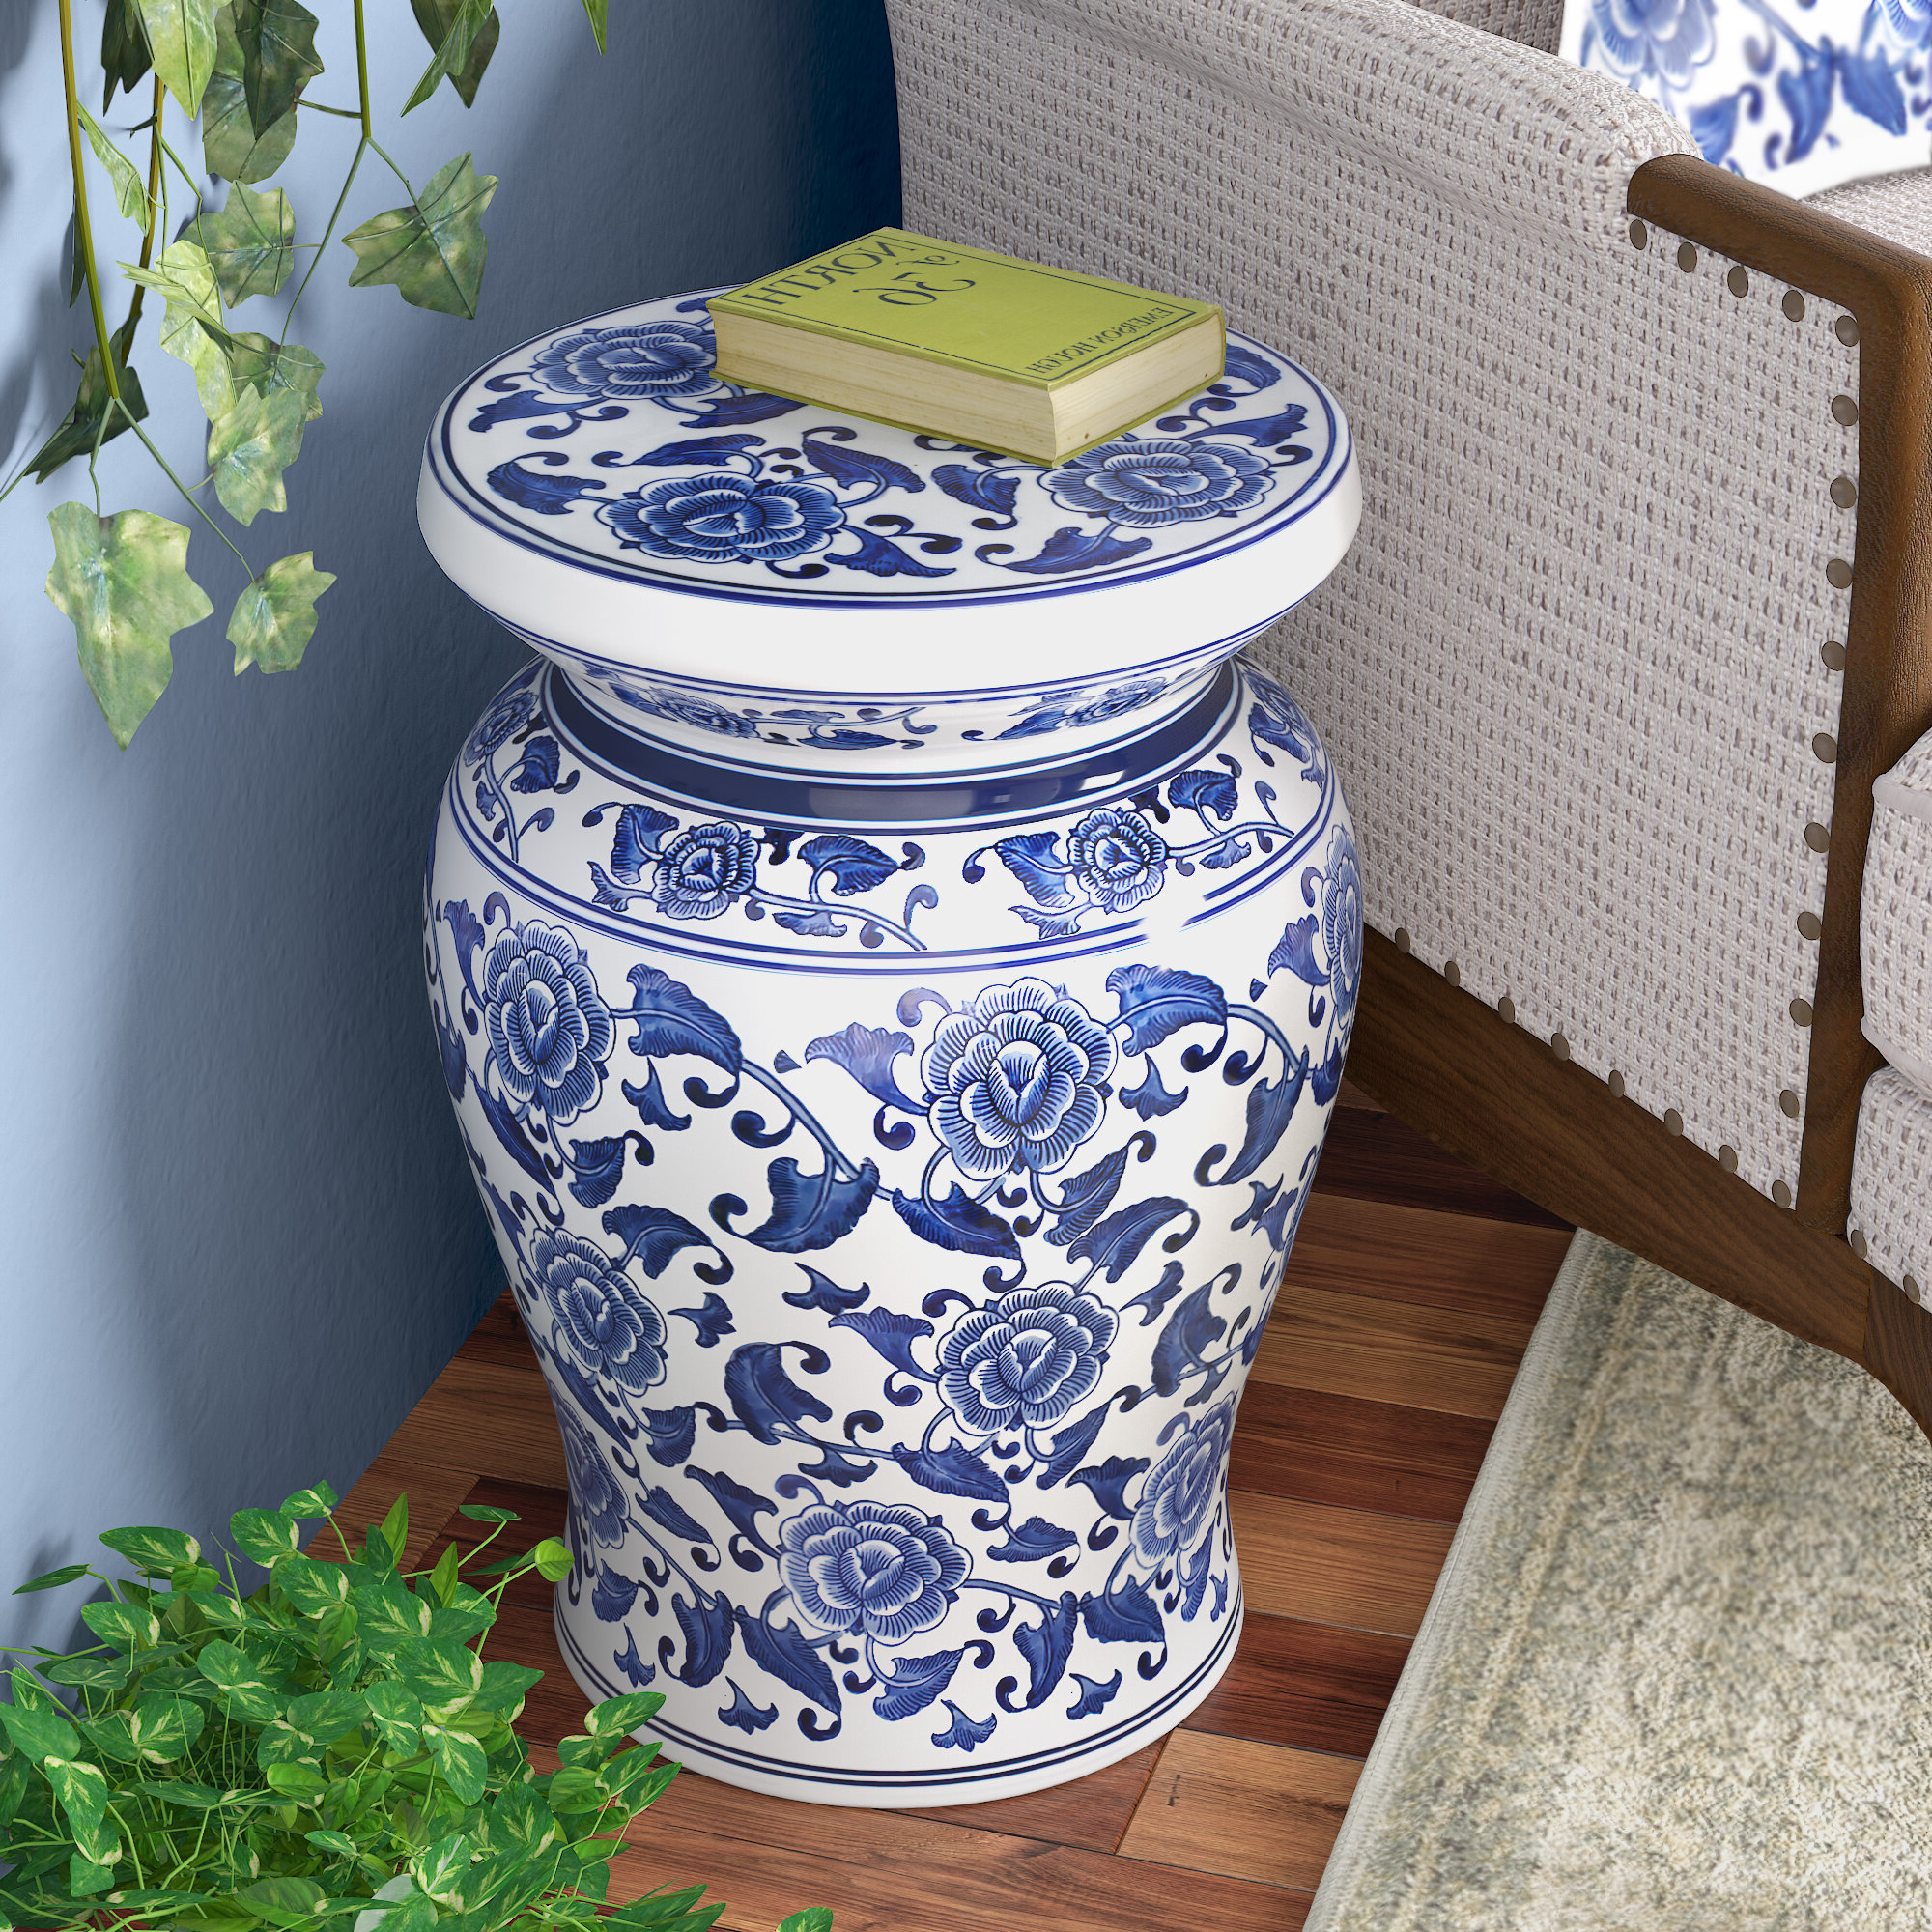 Southsea Ceramic Garden Stool Intended For Popular Weir Garden Stools (View 4 of 30)